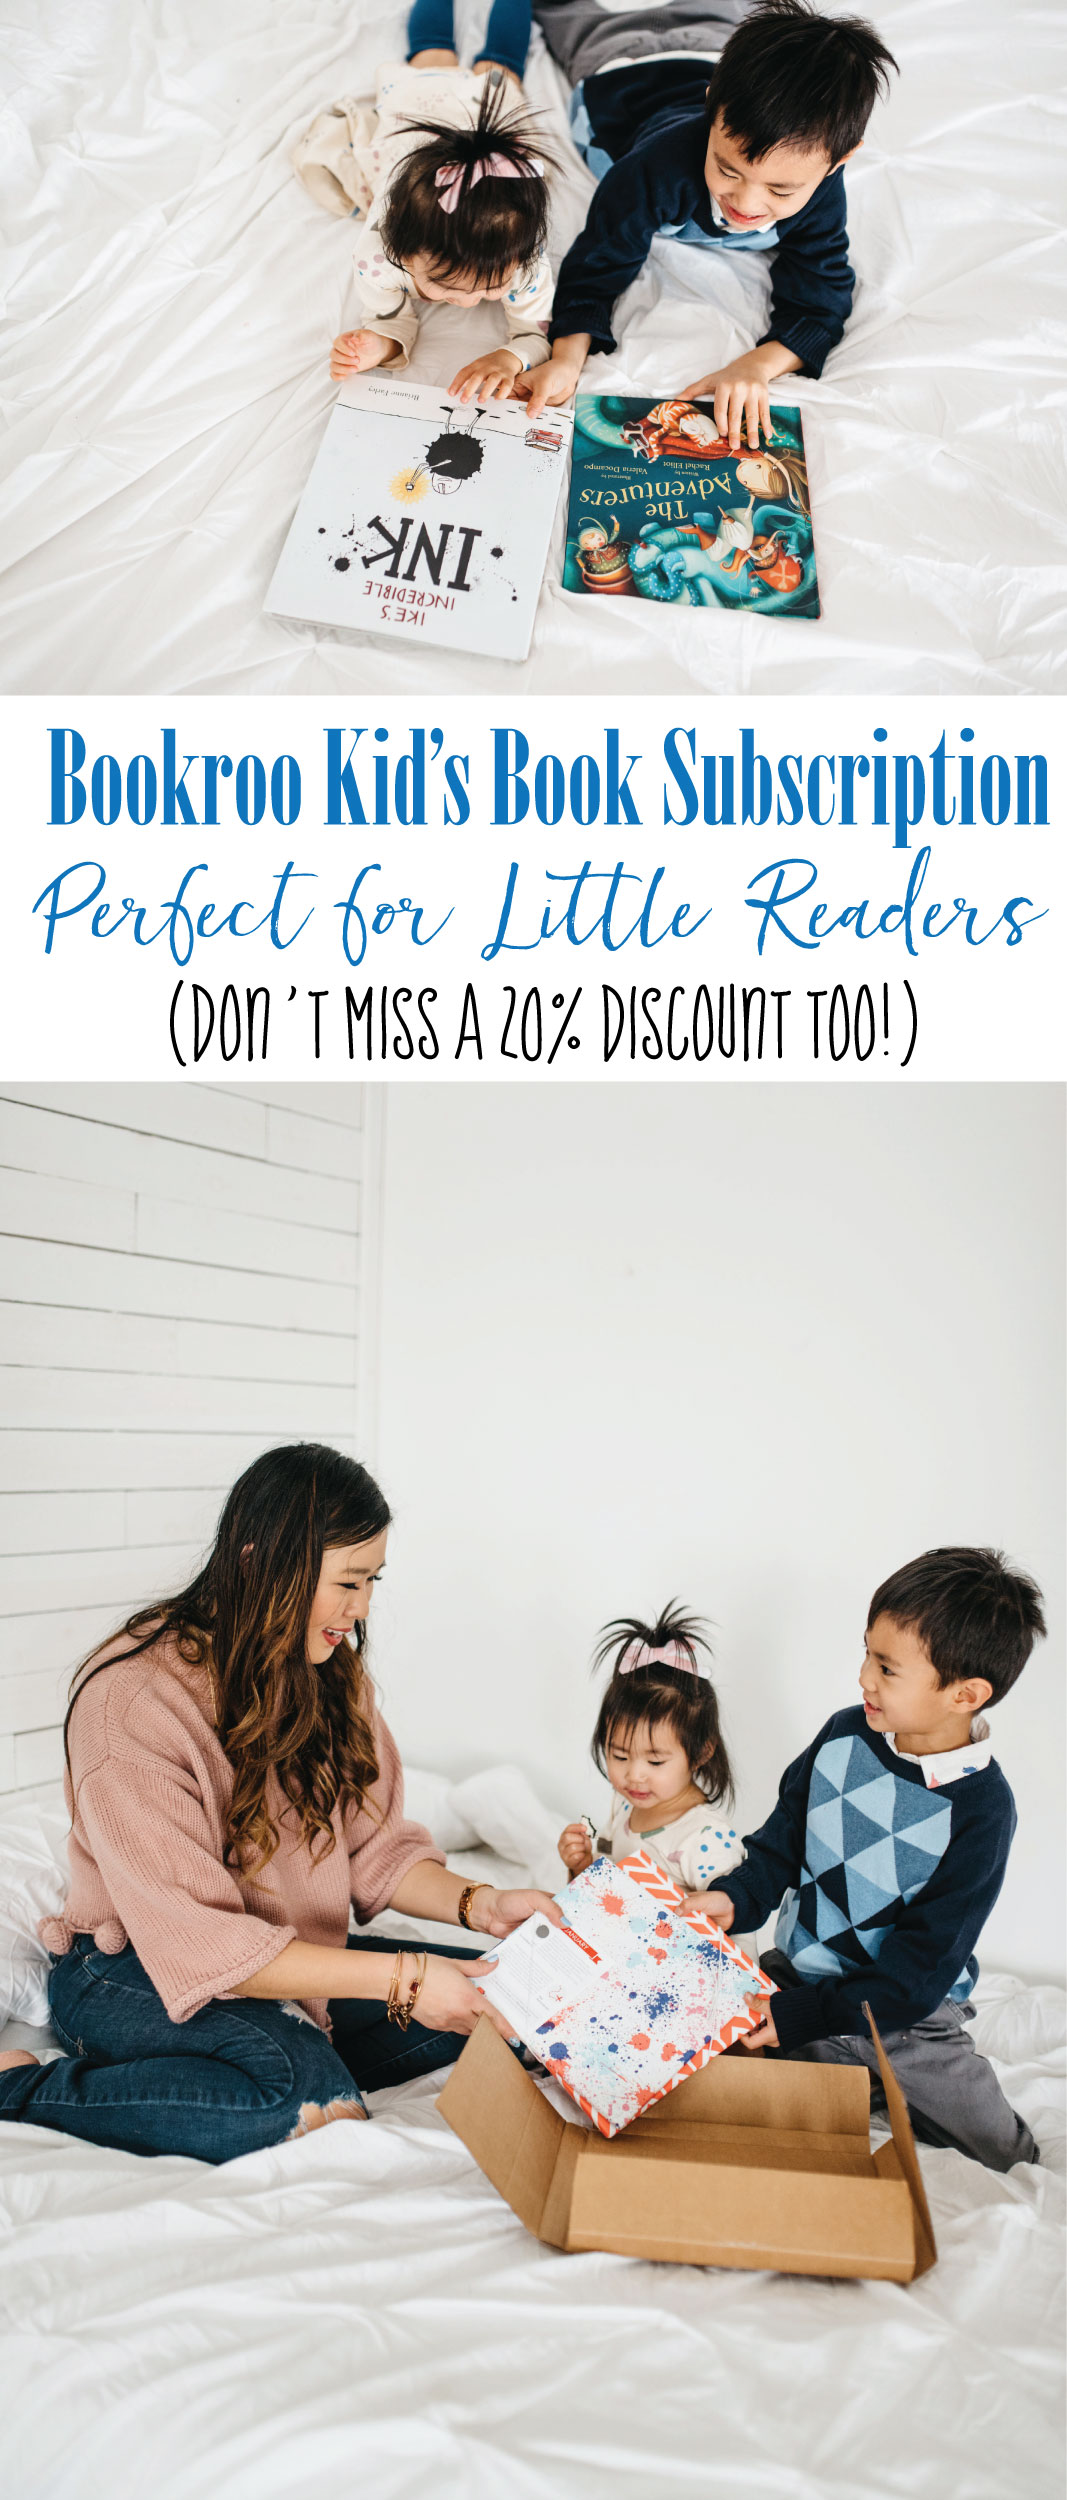 Bookroo Kid's Book Sybscription